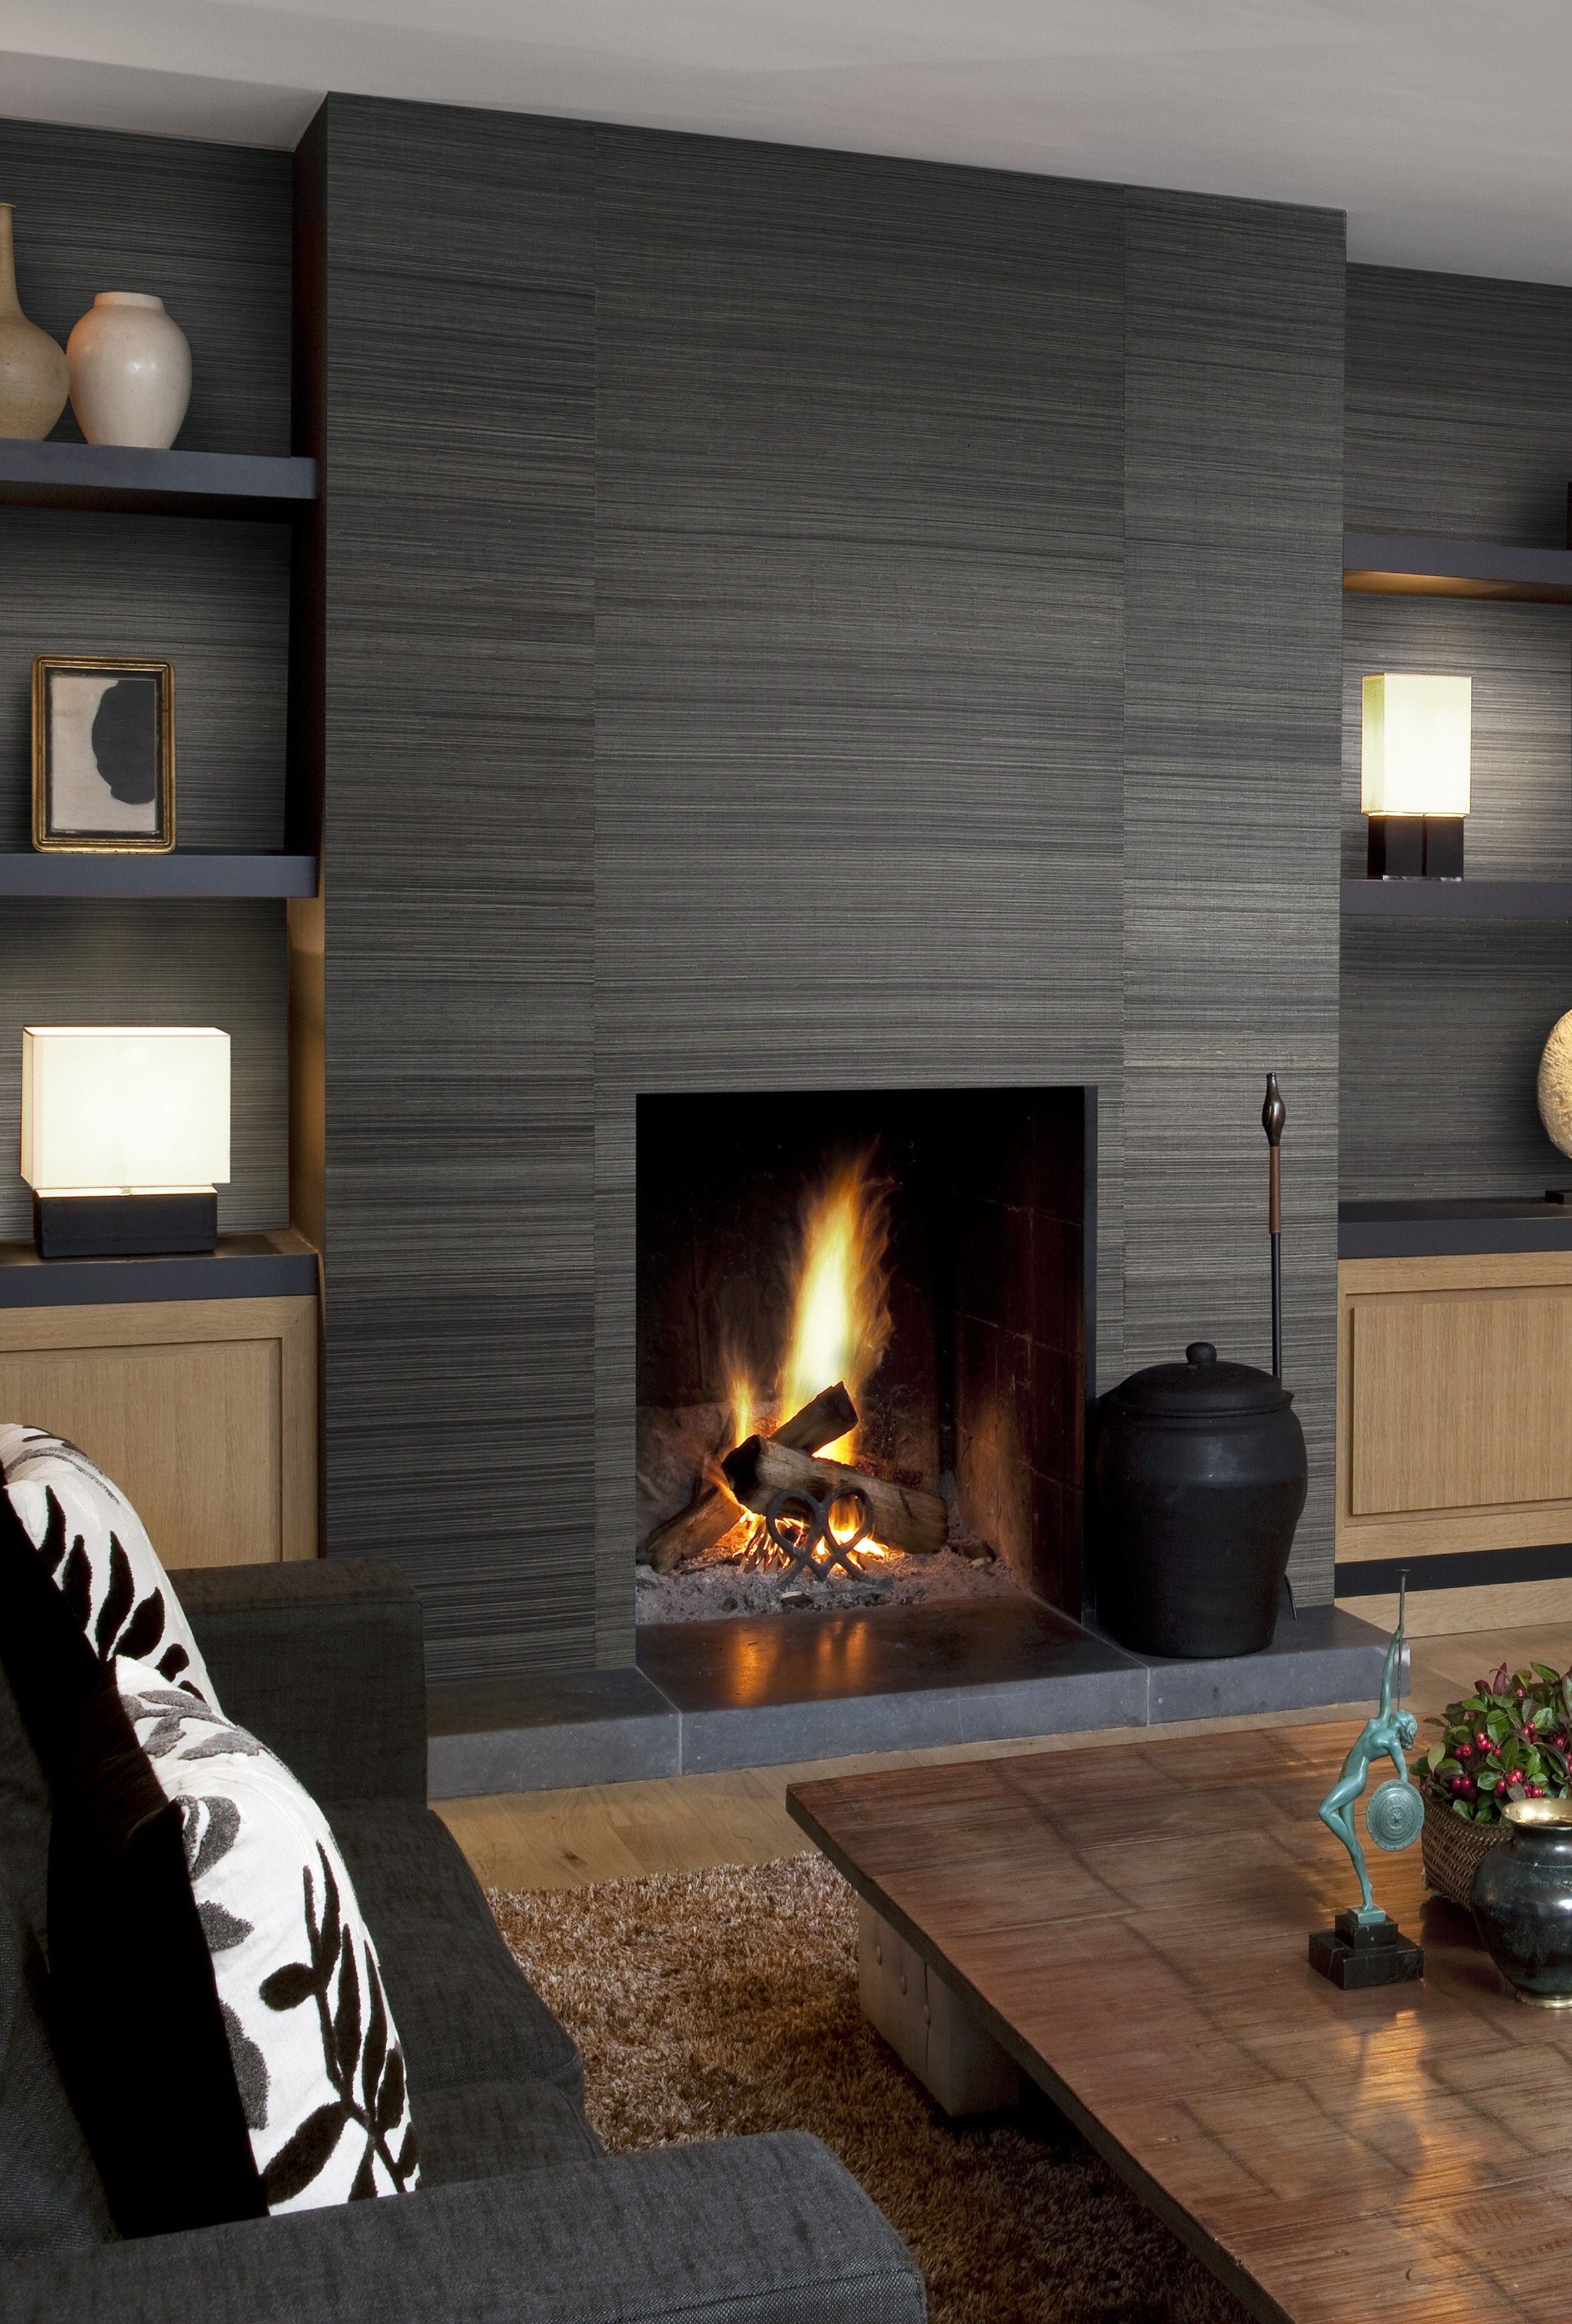 Sumatra Abaca Metal Feature Wall Living Room Luxurious Bedrooms Living Room Fireplace Wallpaper